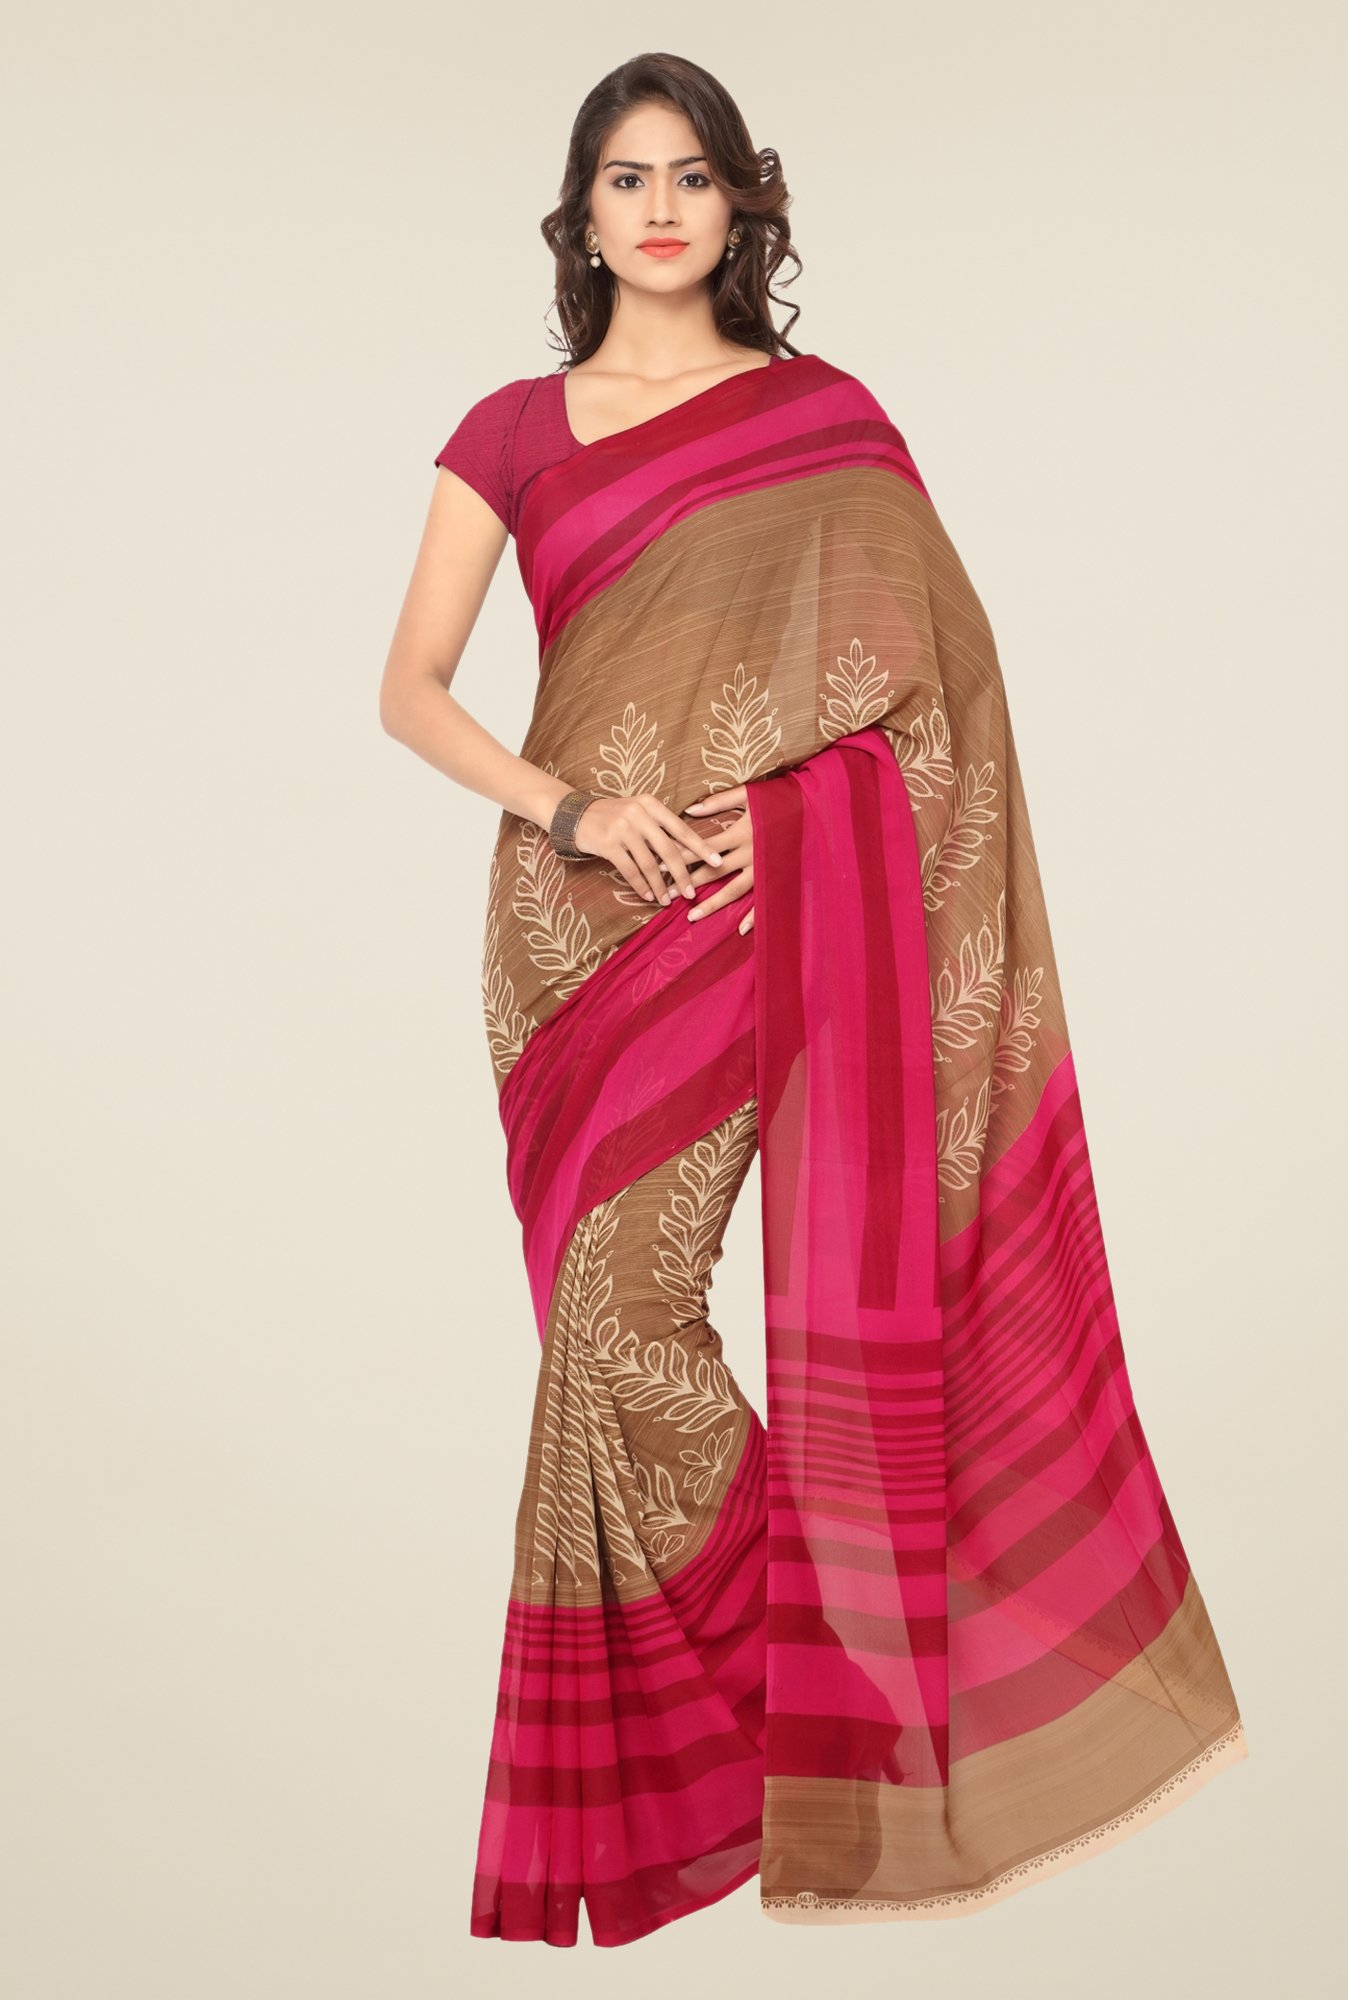 Triveni Brown & Pink Printed Art Silk Saree